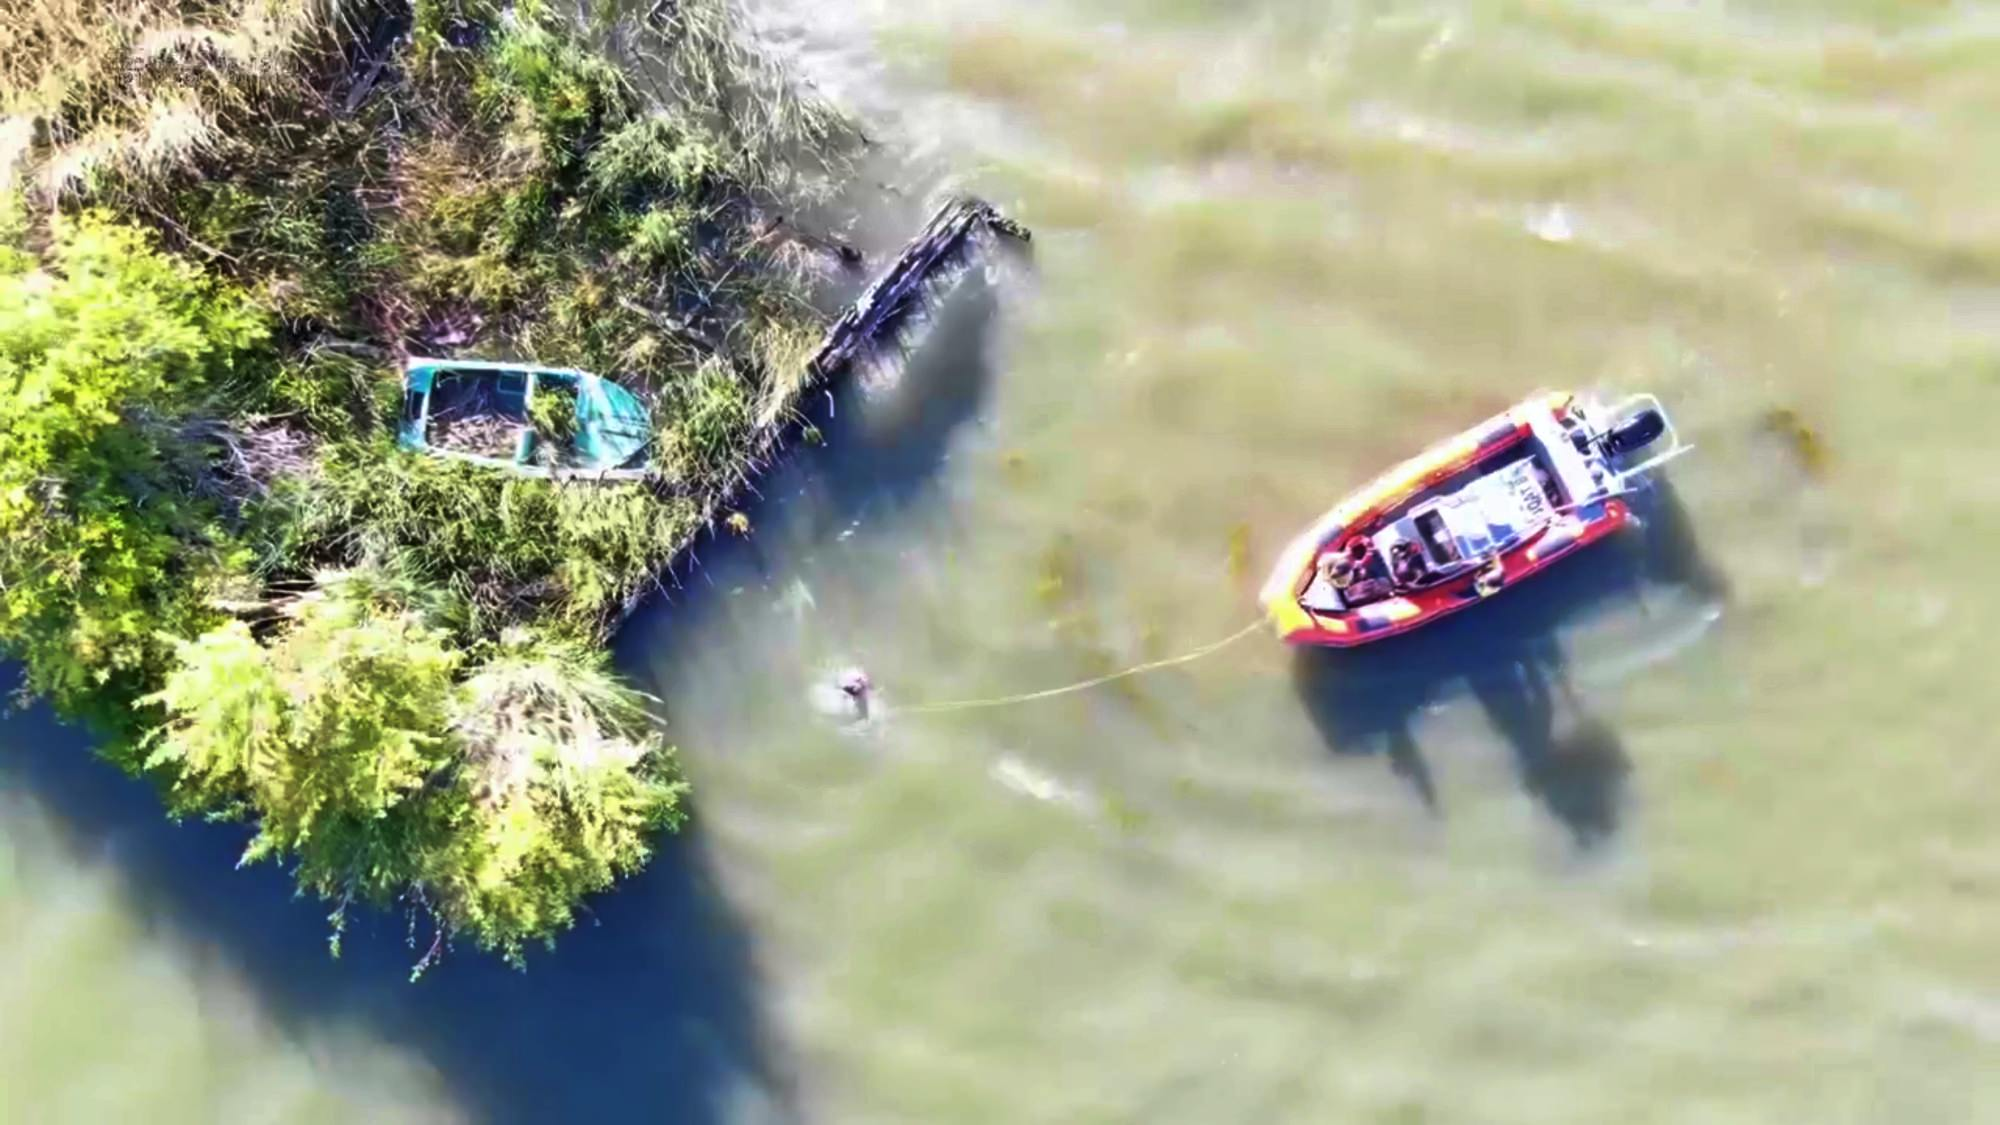 Drone finds father and daughter in San Joaquin River after their canoe capsizes